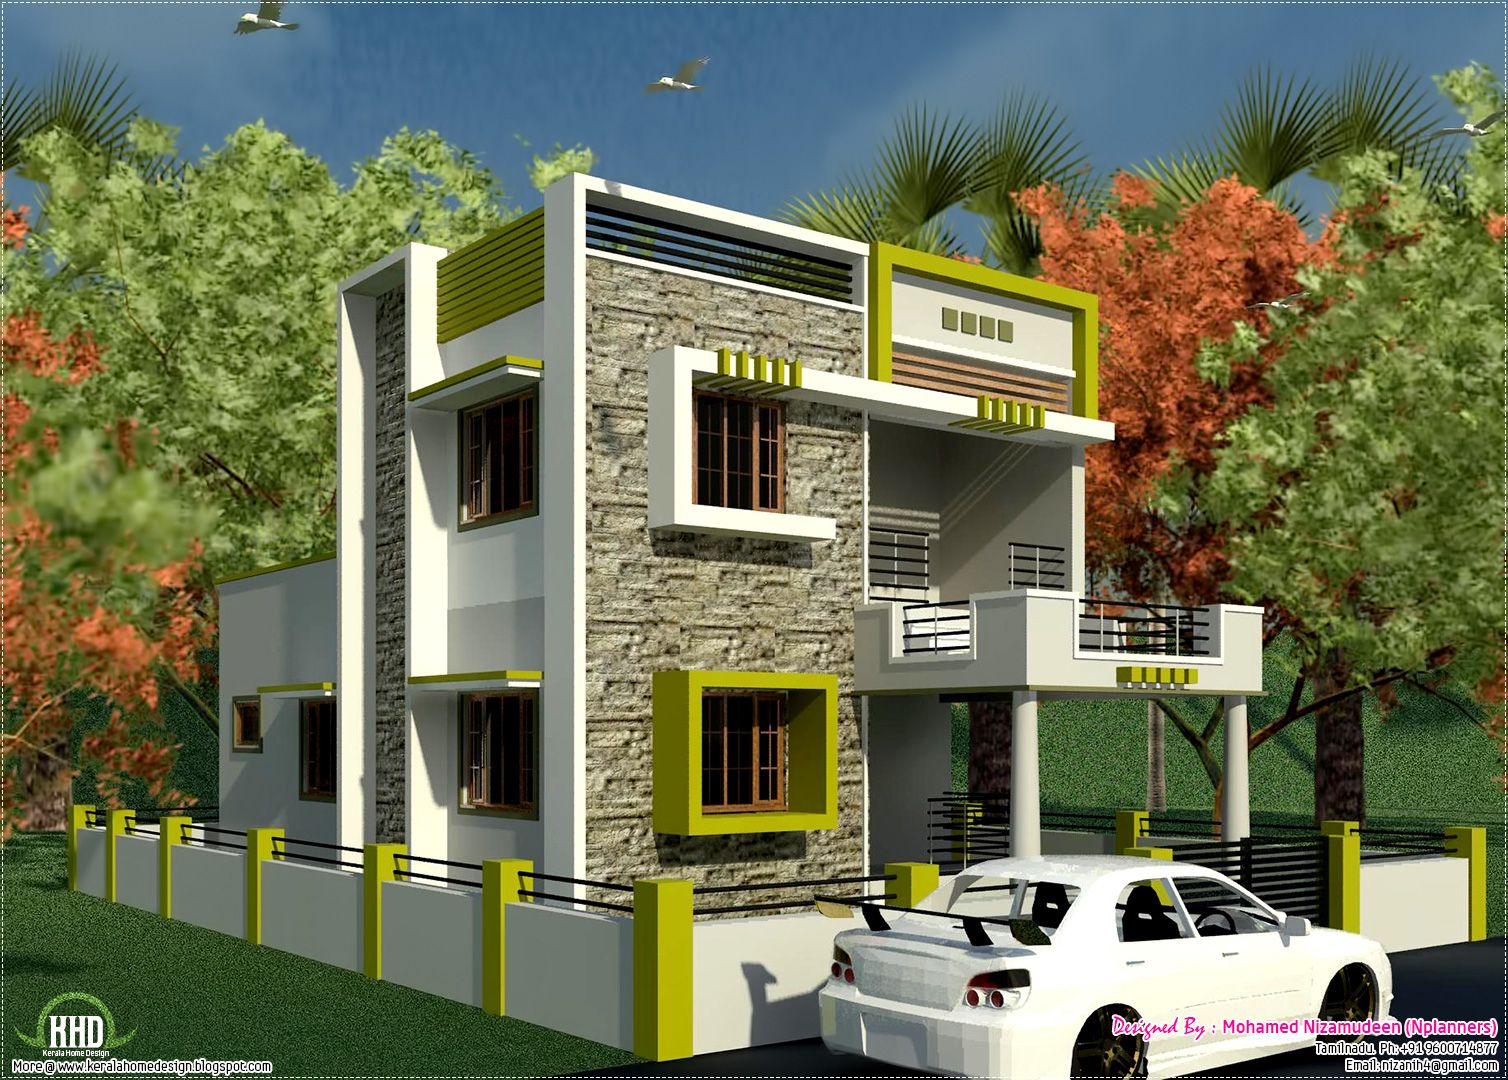 Small house with car park design tobfav com ideas for Small house indian style